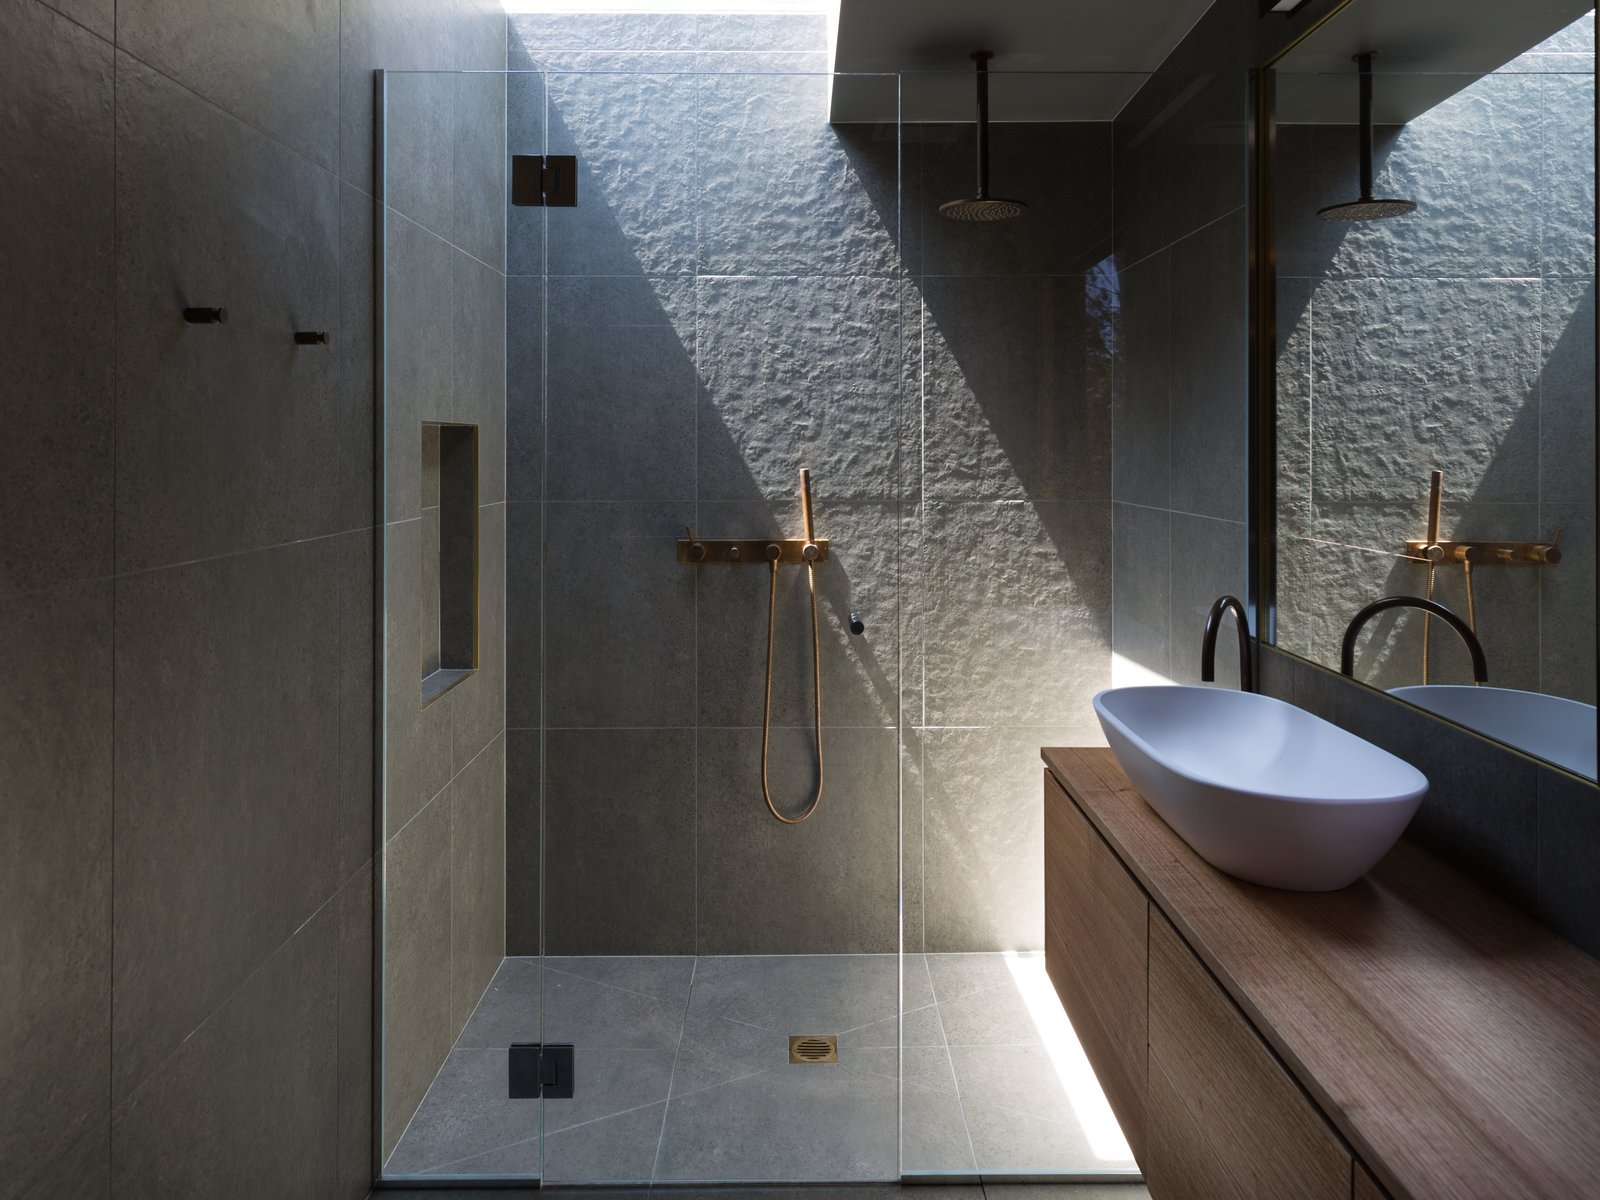 Bath Room, Enclosed Shower, Stone Tile Wall, Wood Counter, and Vessel Sink A skylight brightens the shower area.  Best Photos from A Melbourne Couple Escape City Living in This Tasmanian Retreat